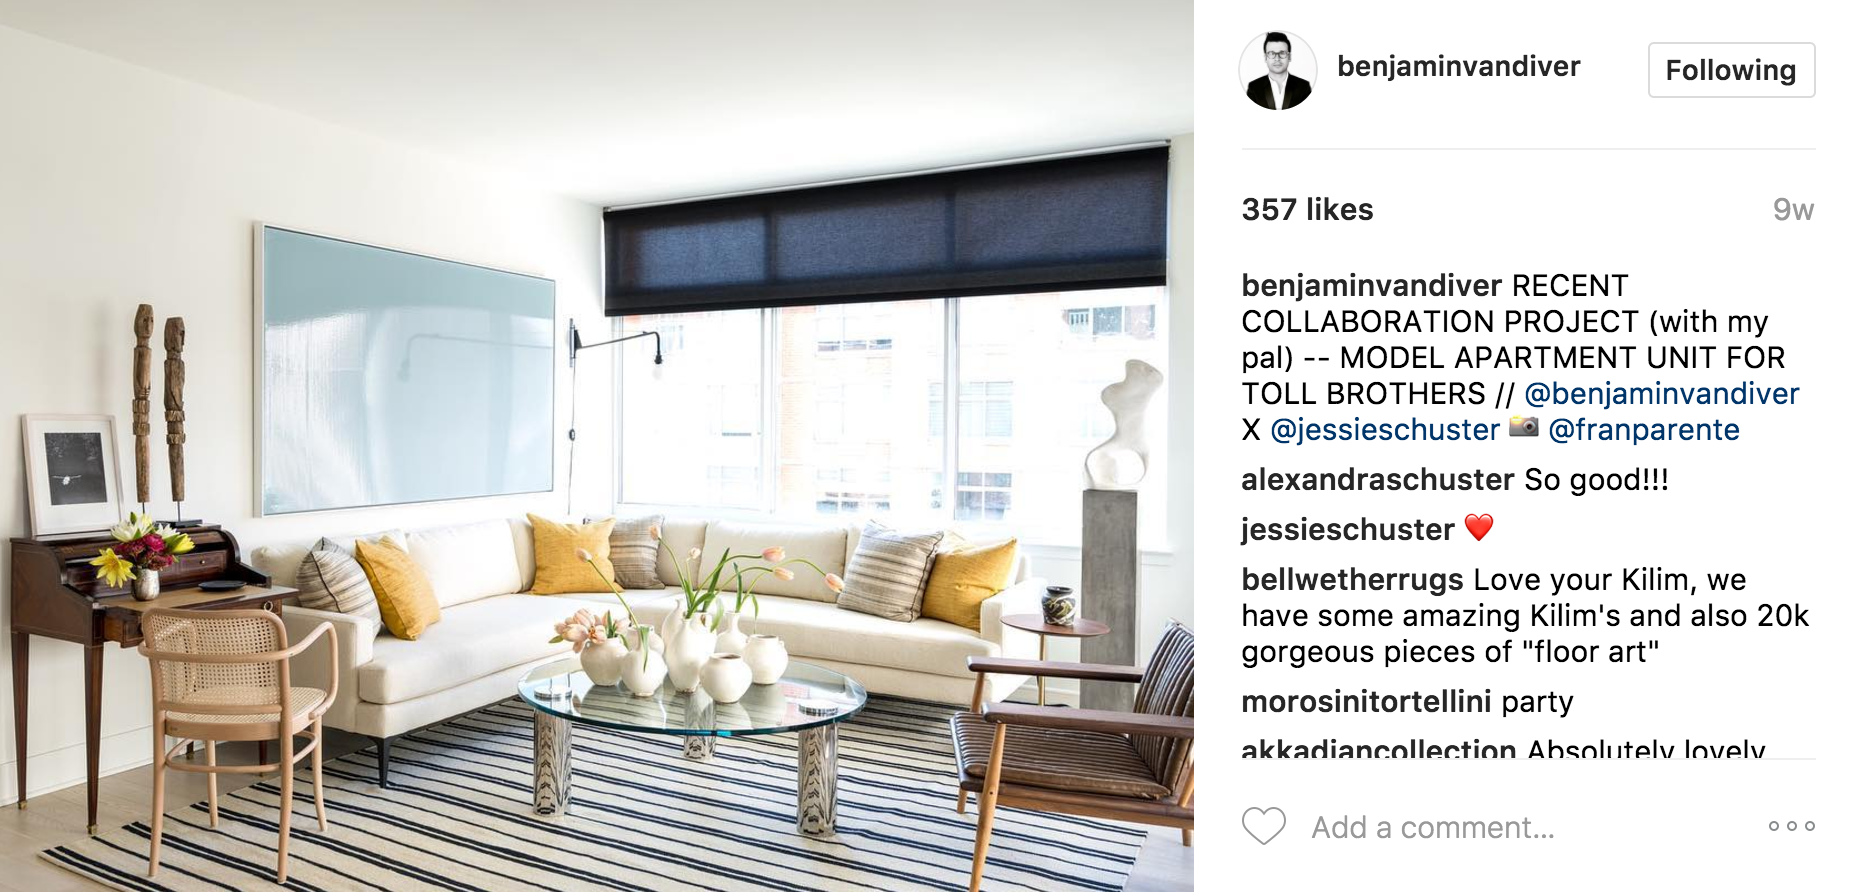 17 The 10 Best NYC Interior Designers on Instagram   The Shade Company